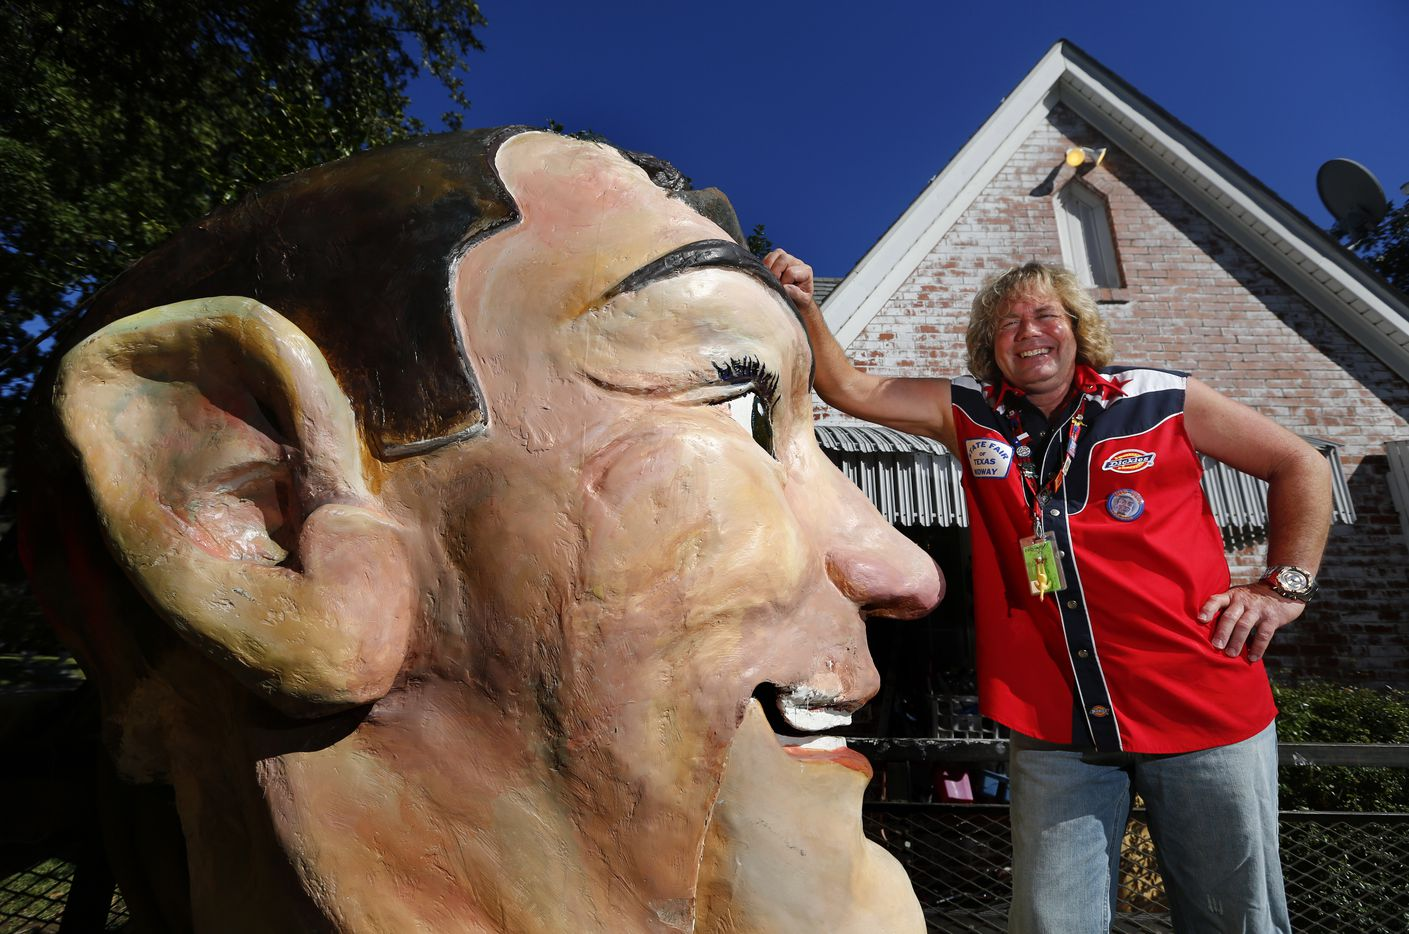 Wayne Smith bought the head of the original Big Tex at an auction in 1993.